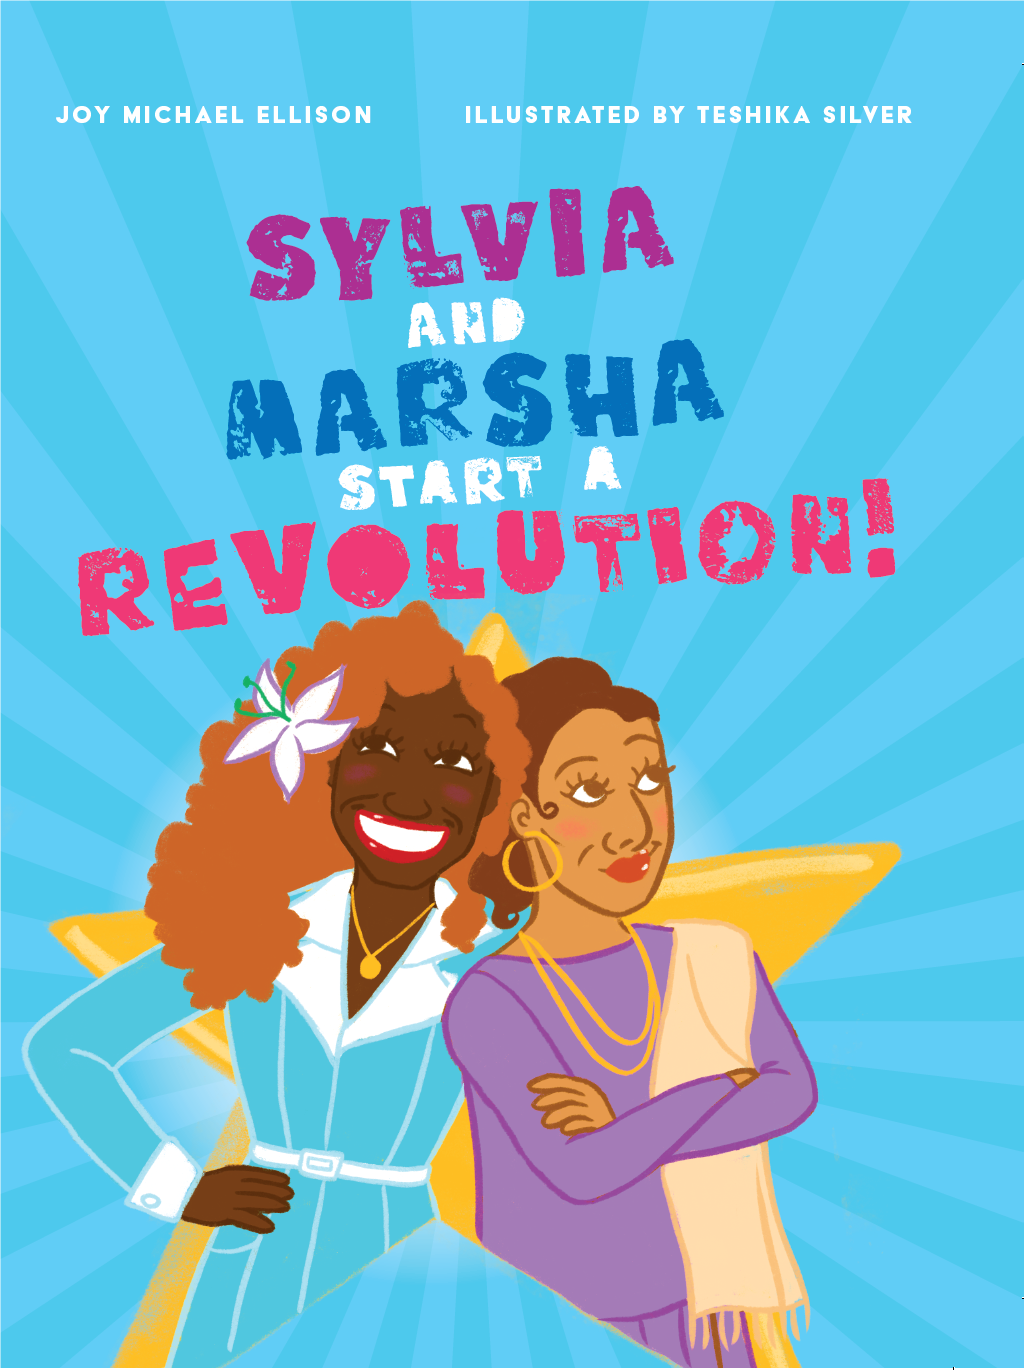 https://illinois.scbwi.org/wp-admin/admin-ajax.php?action=cfdb-file&s=1596729751.7711&form=2020+Virtual+Book+Launch&field=newest-book-cover